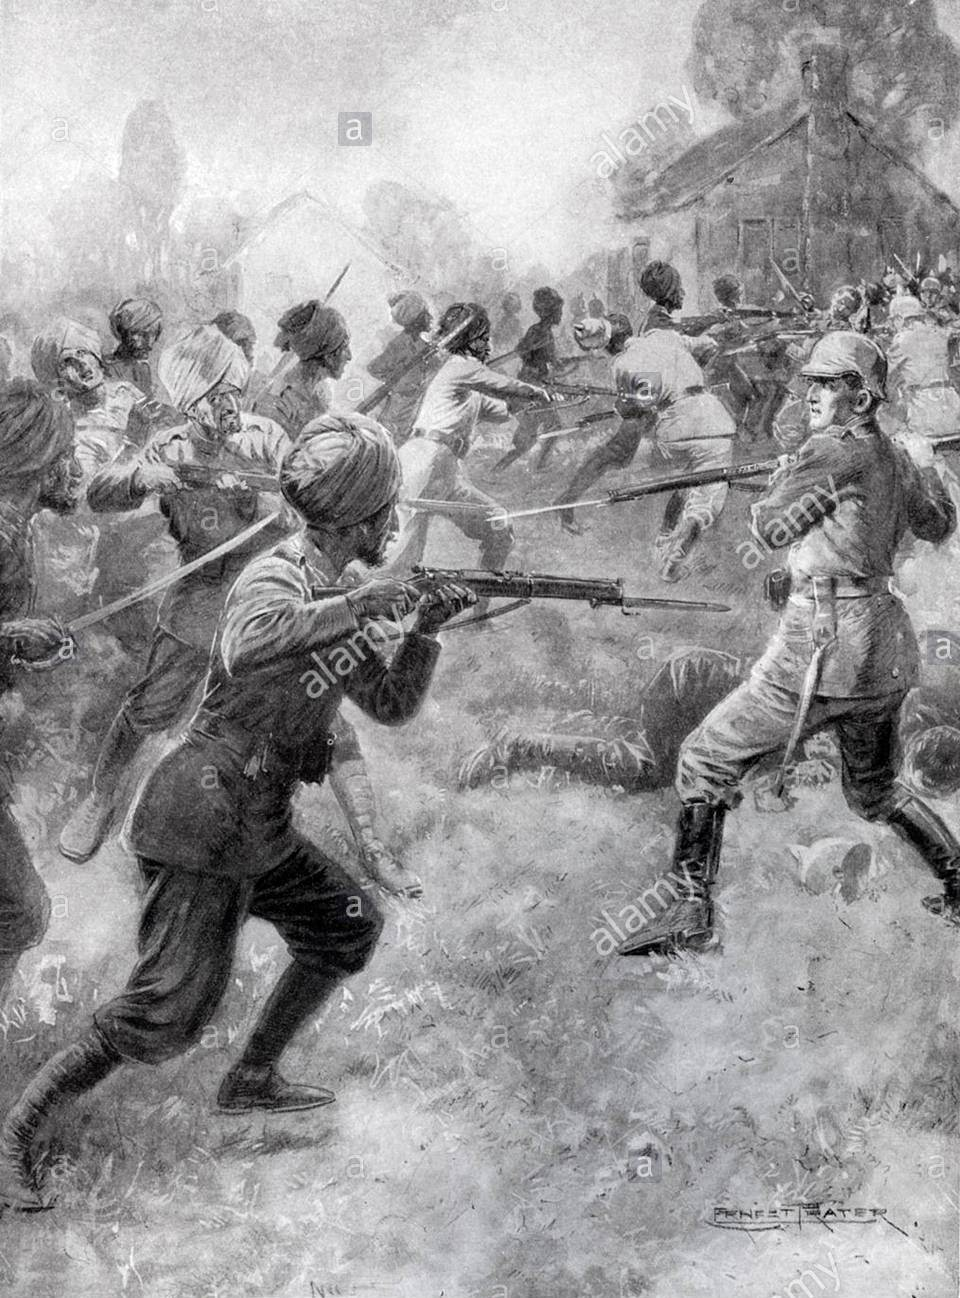 58th Vaughan's Rifles on the attack